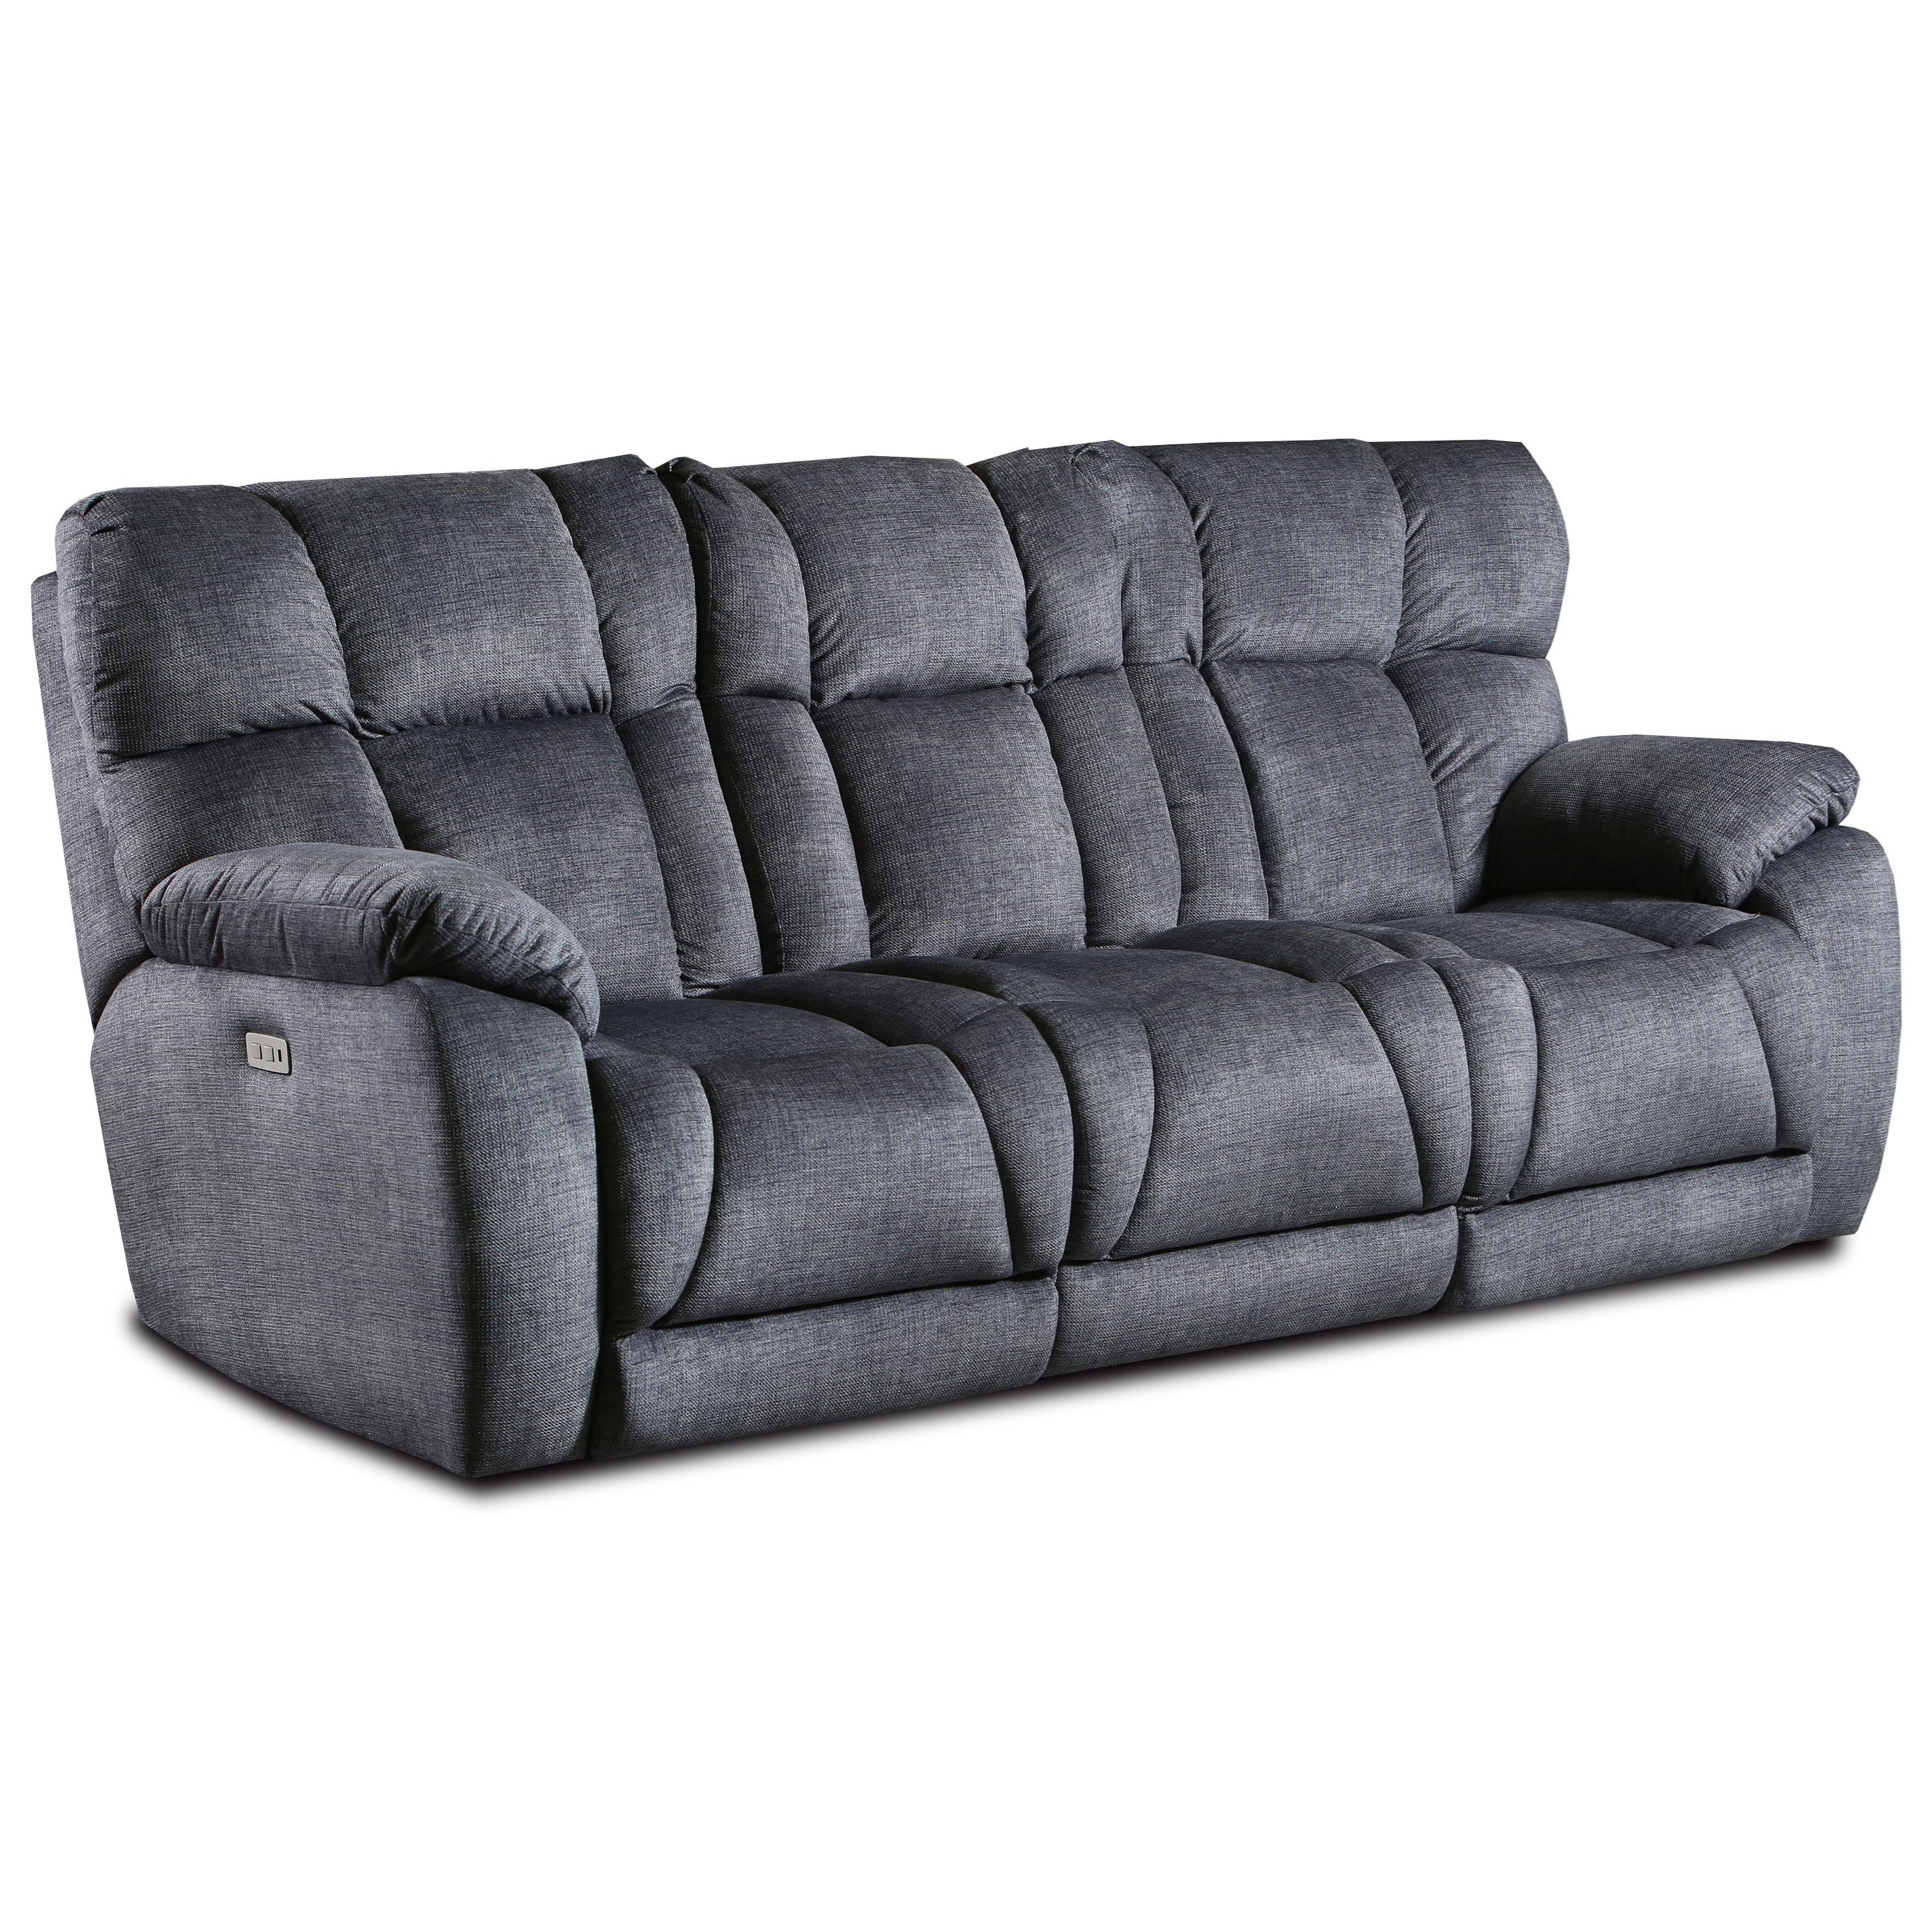 Wild Card Double Reclining Power Sofa w/ Dropdwn Table by Southern Motion at Johnny Janosik